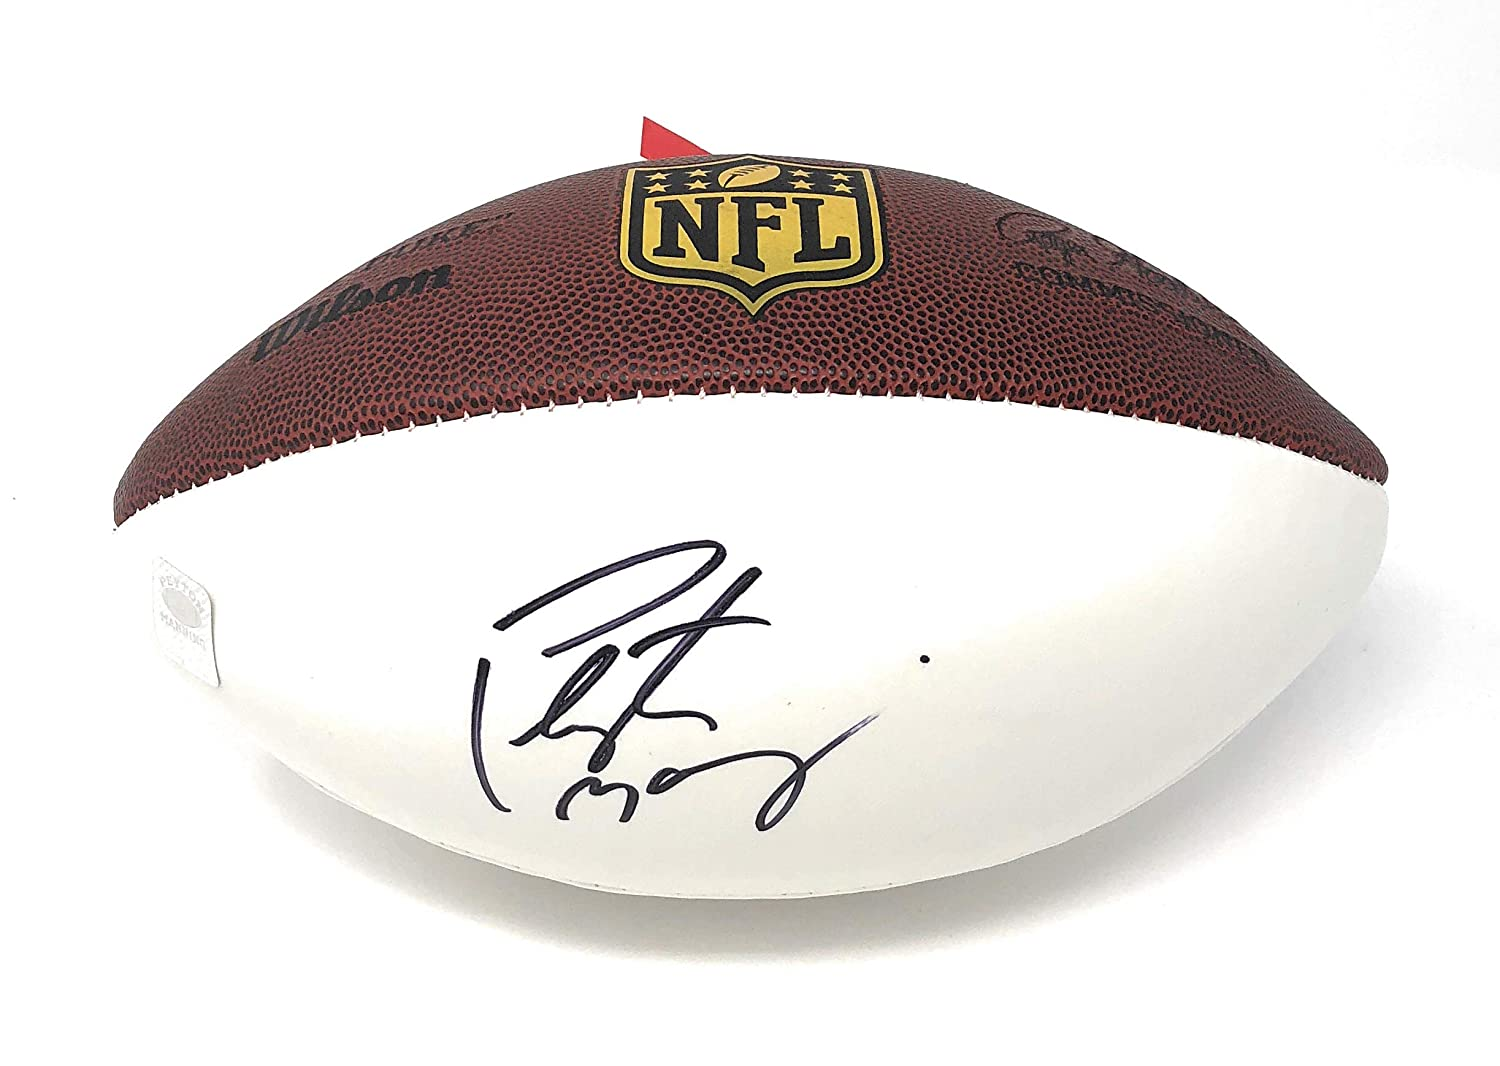 Peyton Manning Indianapolis Colts Denver Broncos Signed Autograph NFL Football Manning Player Hologram